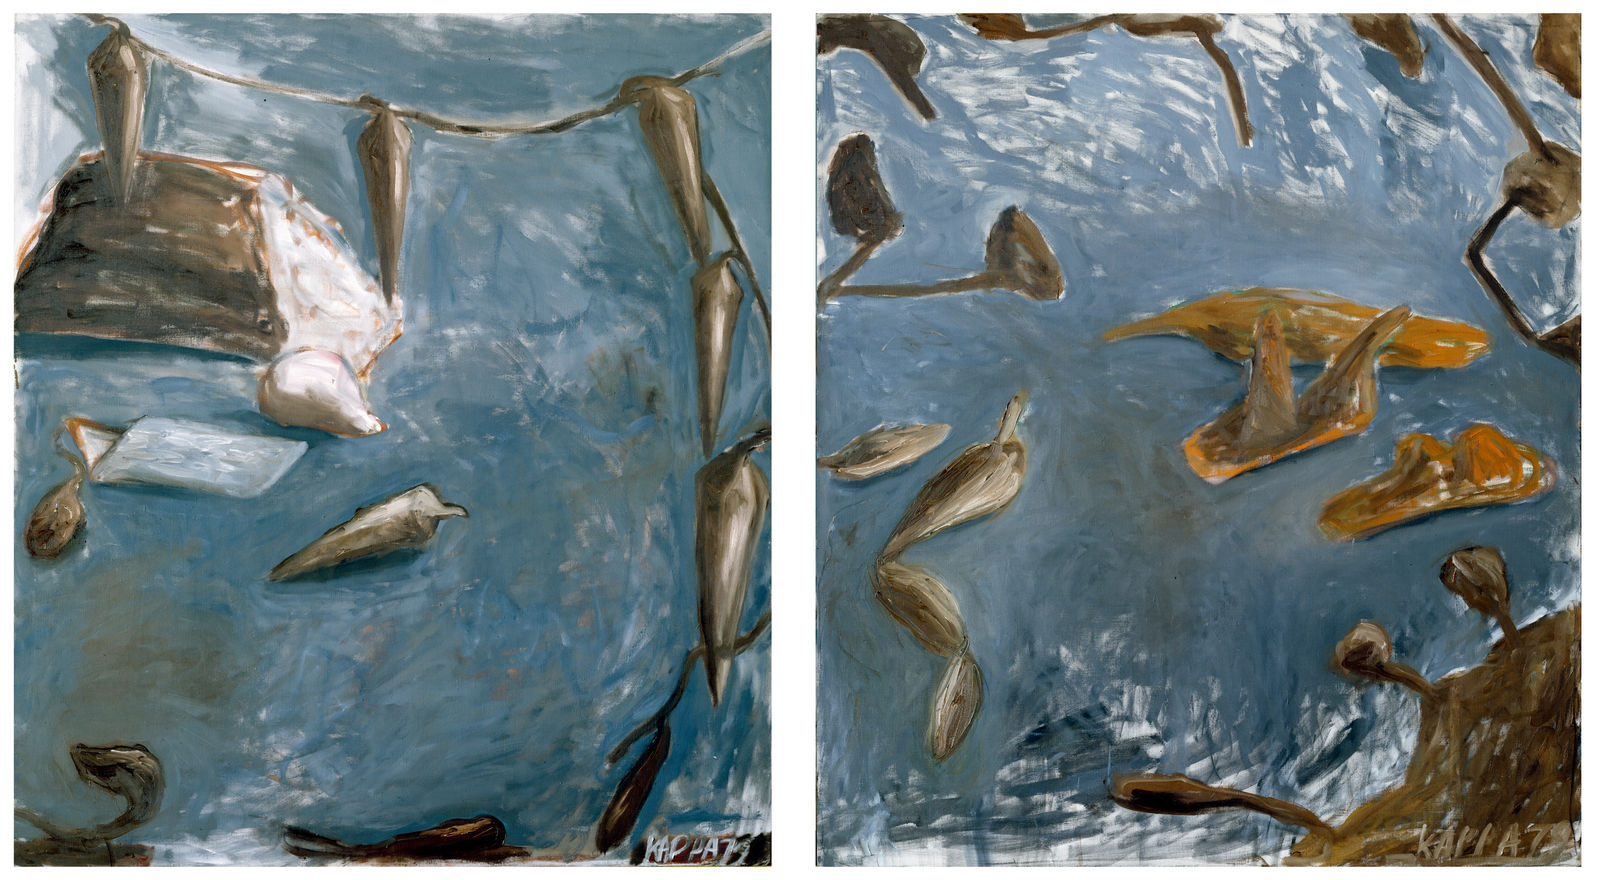 Stundenablauf , 1979, Oil on canvas diptych, 51.37h x 45.27w in (130.5h x 115w cm each), Morat-Institute, Freiburg in Breisgau